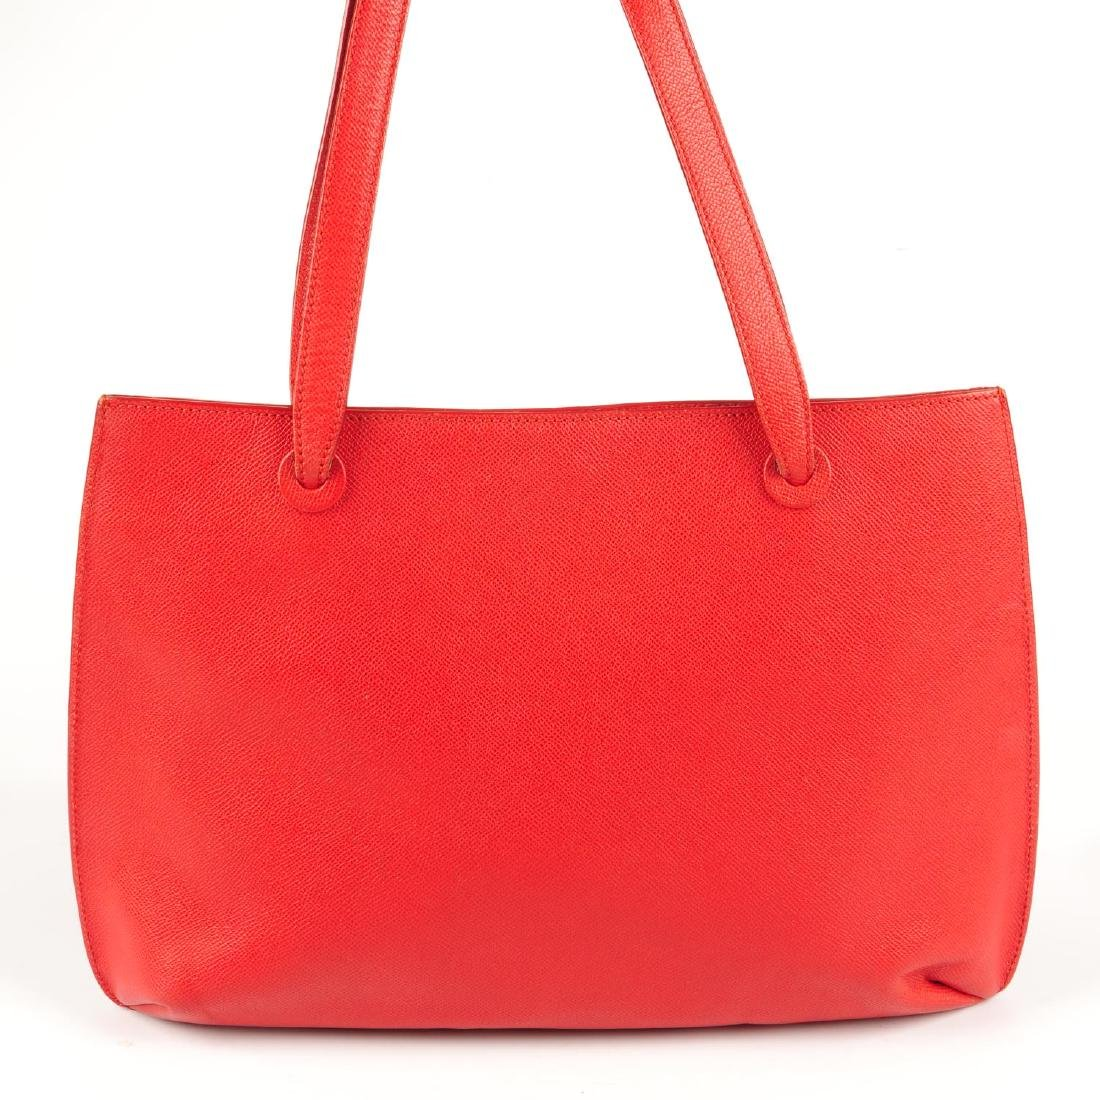 CHANEL - a vintage red leather handbag. Designed with a - 2